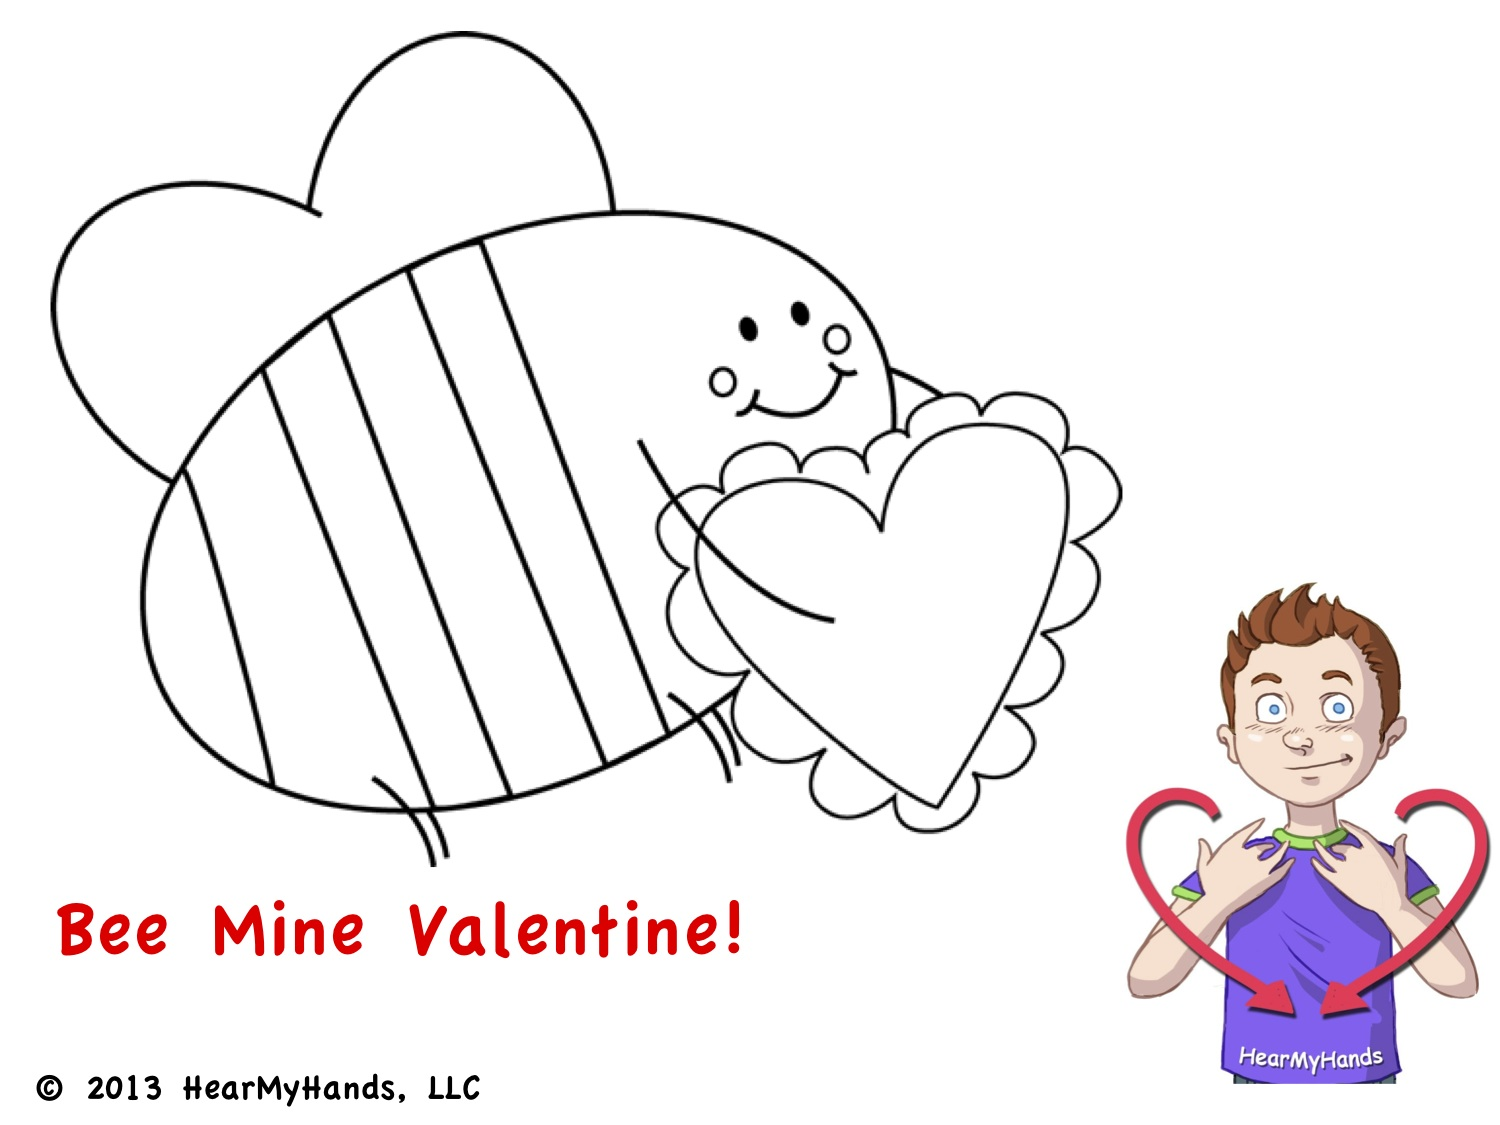 Sign VALENTINES We Created A Free Valentines Day Language Coloring Page